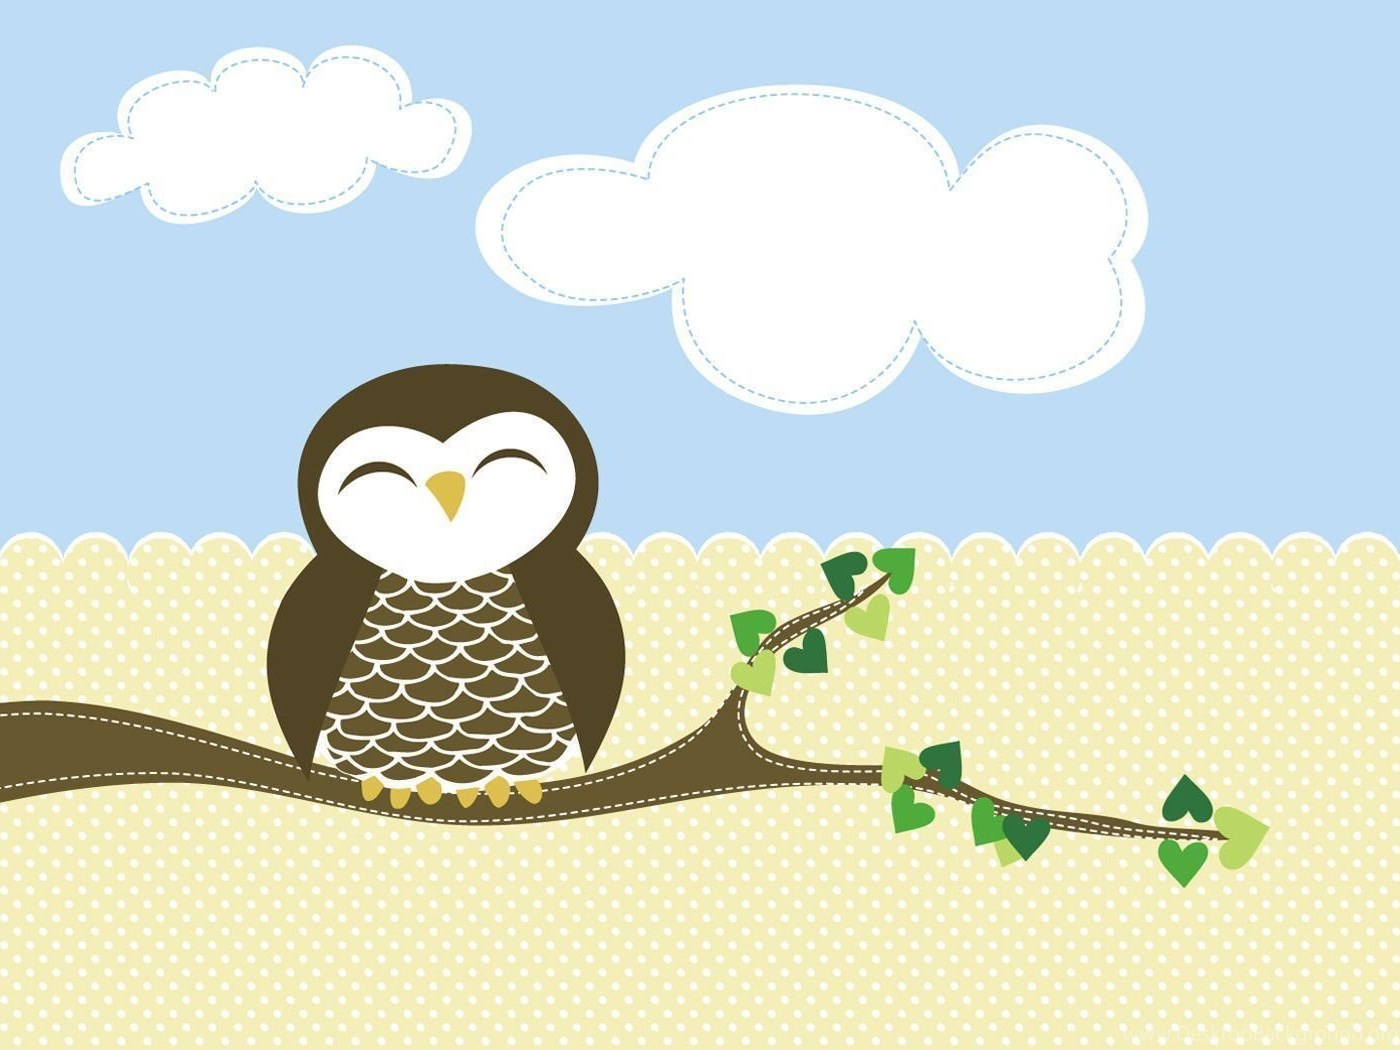 Cute Owl Wallpapers Desktop 1 High Definition Widescreen